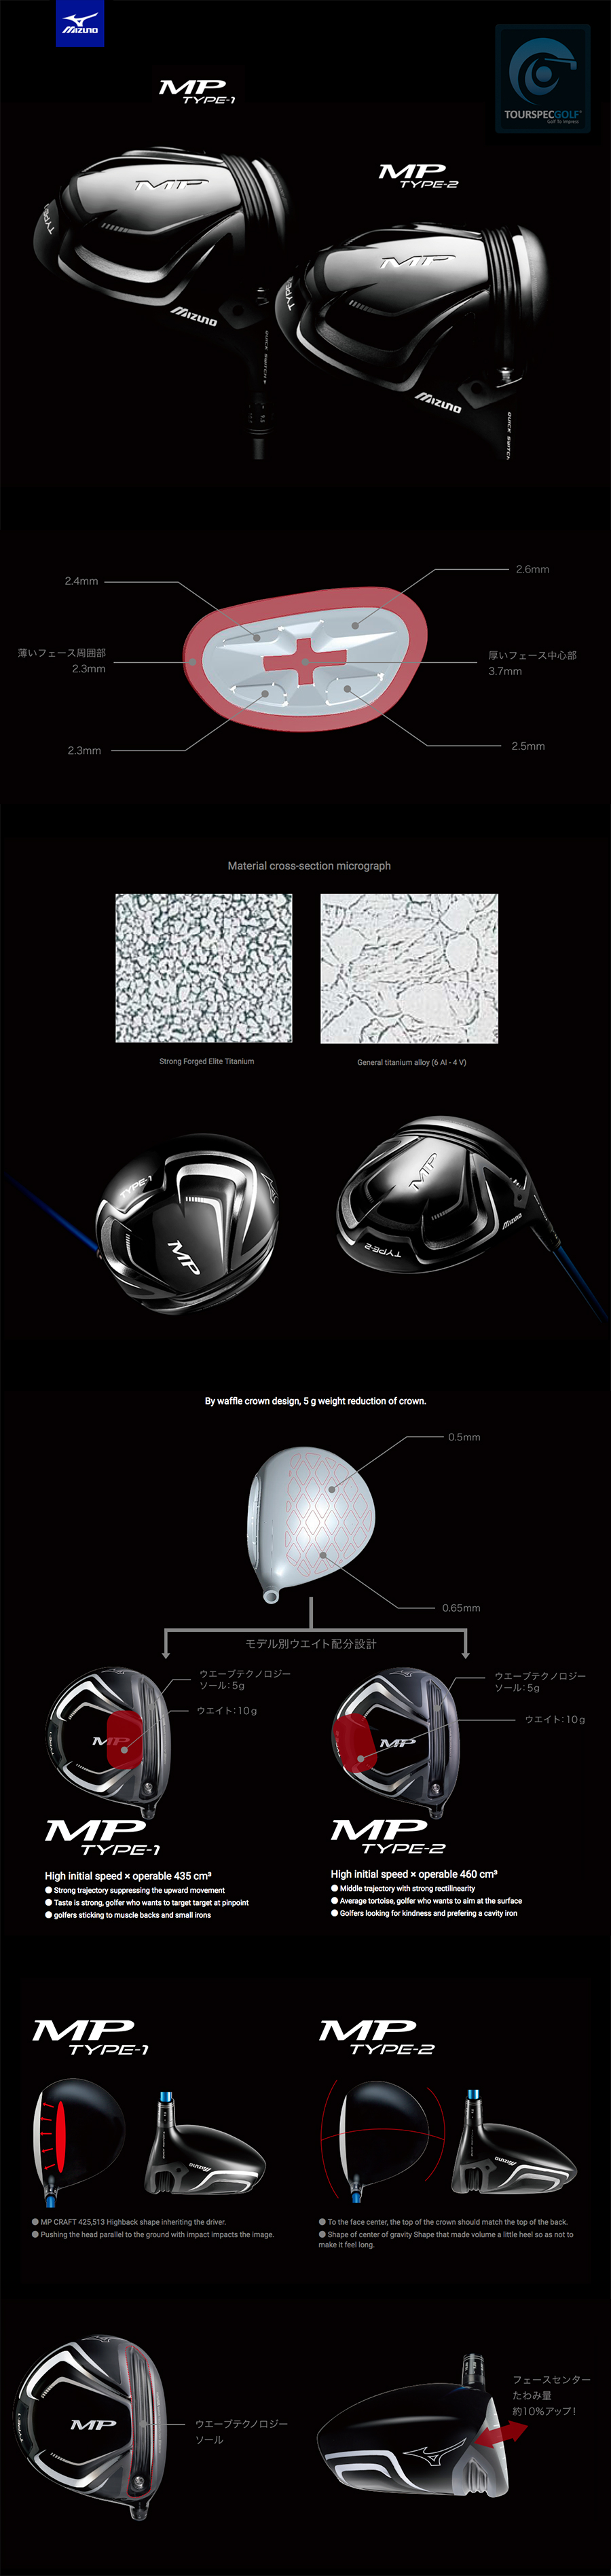 Mizuno 2017 MP Type1 and Type2 Drivers